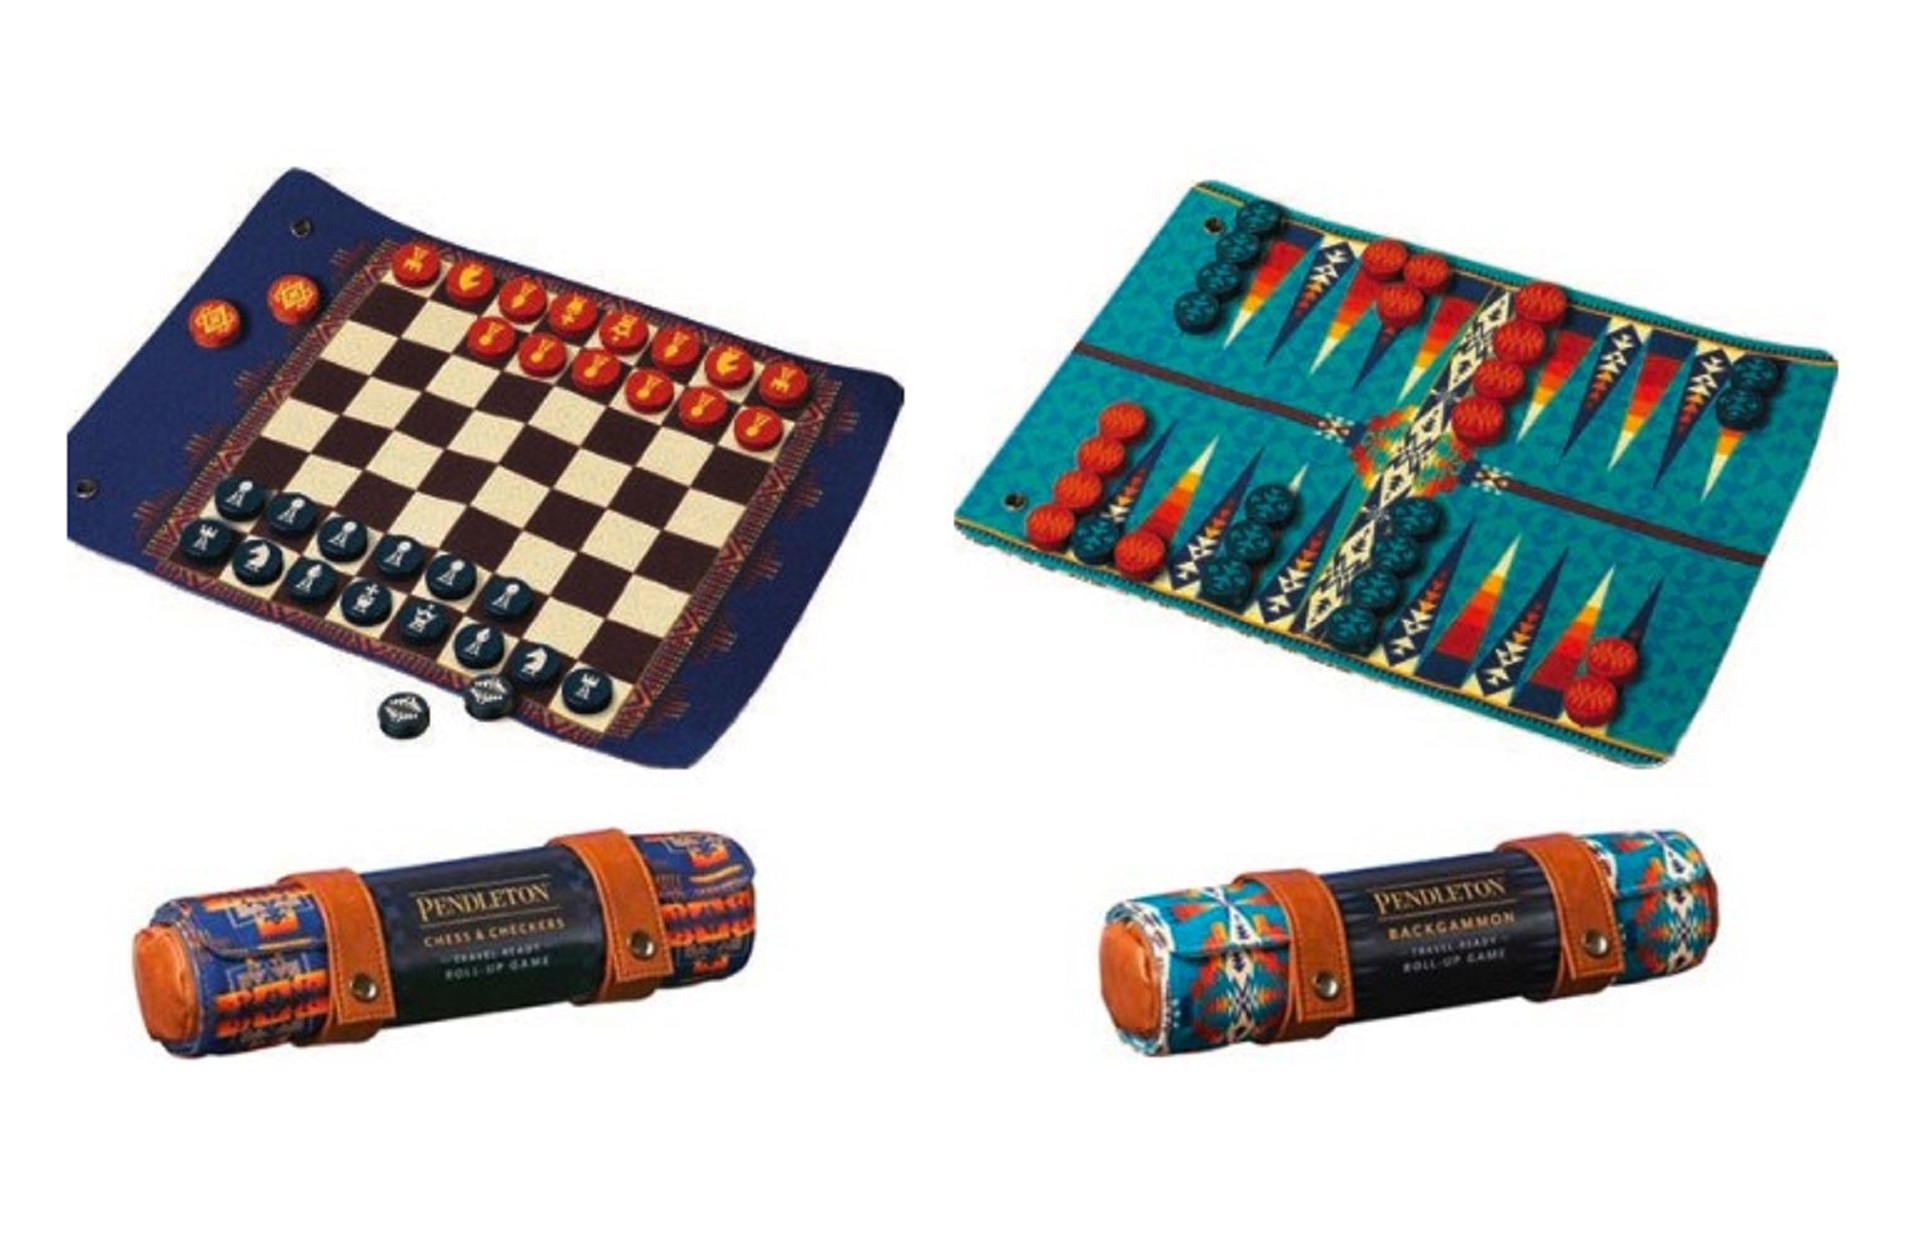 2019 holiday gift guide Pendleton Roll-Up Games